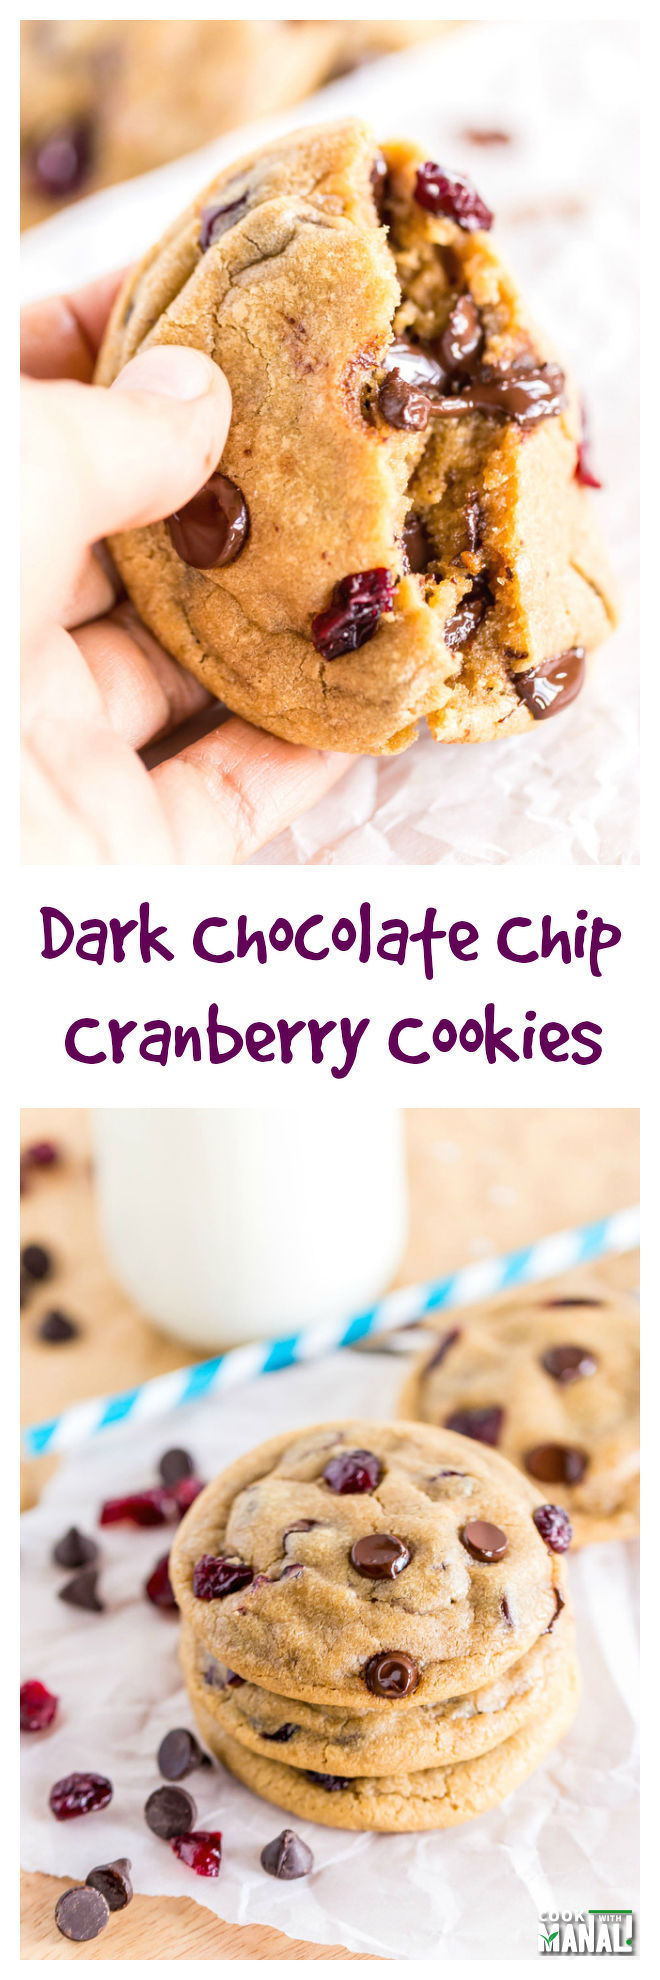 Dark Chocolate Chip Cranberry Cookies Collage